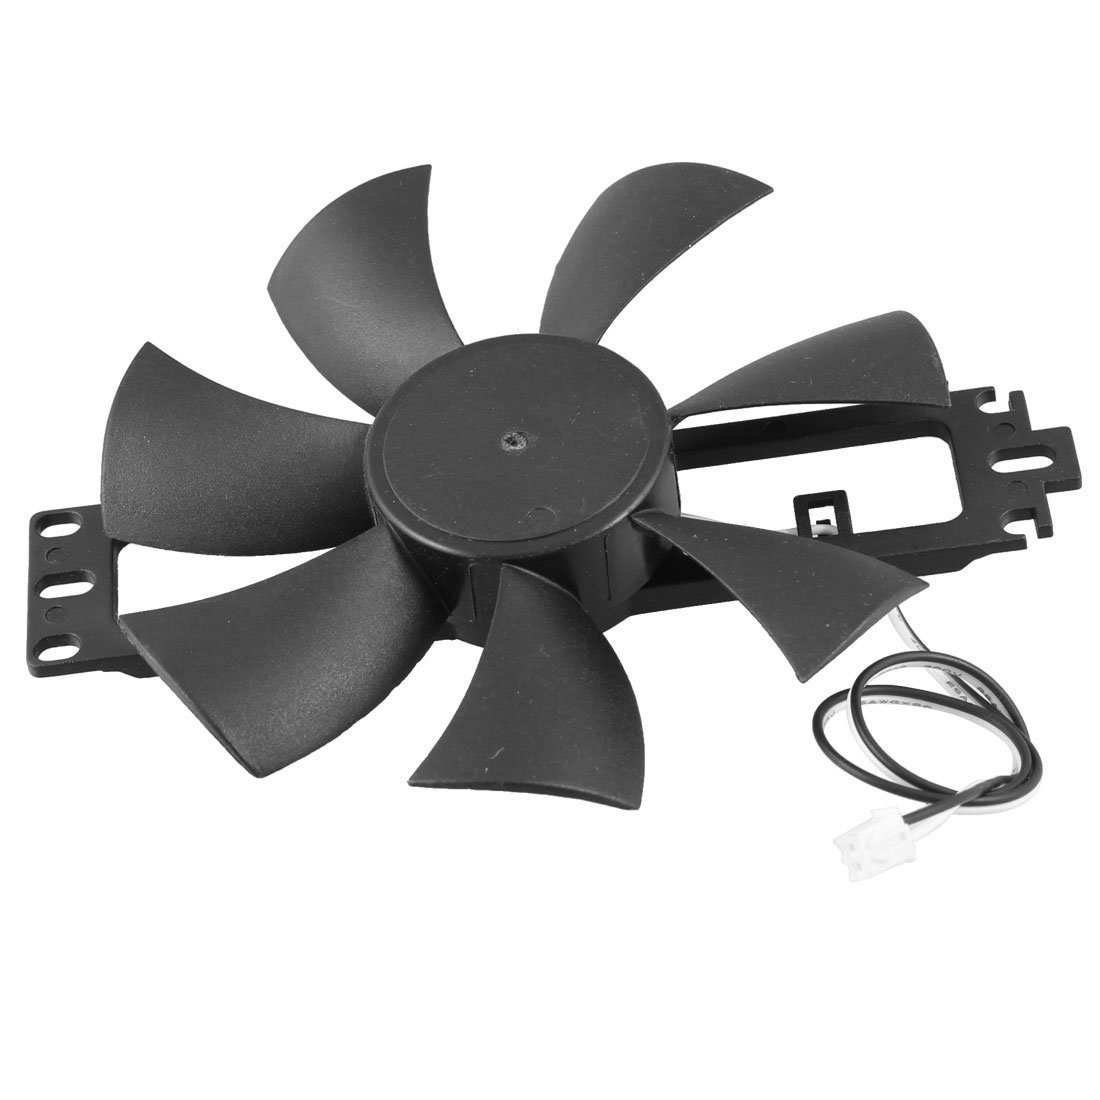 New DC 18V Plastic Induction Cooker Brushless Cooling FanNew DC 18V Plastic Induction Cooker Brushless Cooling Fan